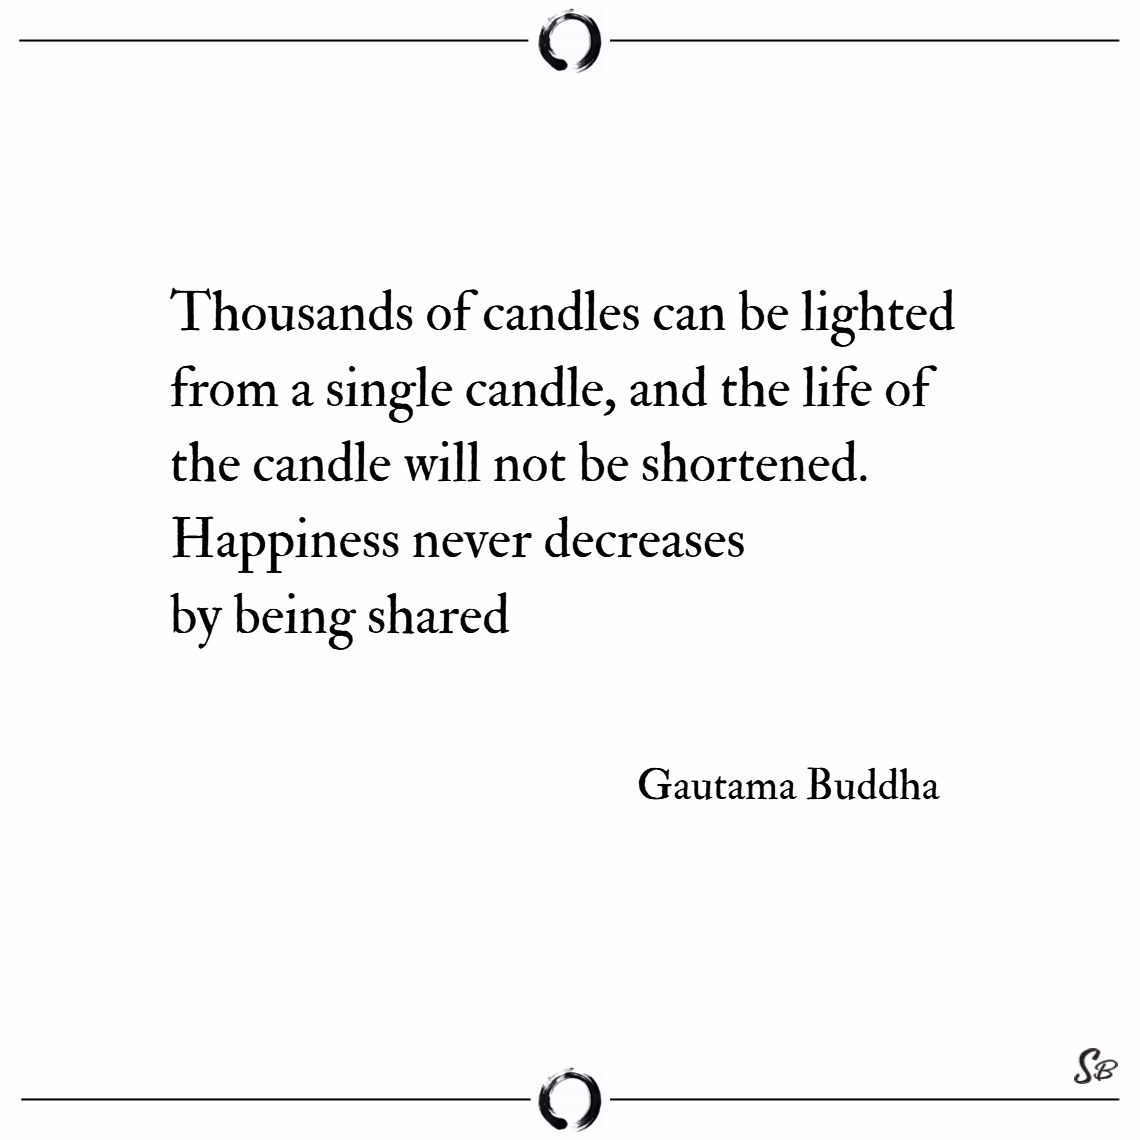 Thousands of candles can be lighted from a single candle, and the life of the candle will not be shortened. happiness never decreases by being shared. – gautama buddha Buddhism quotes